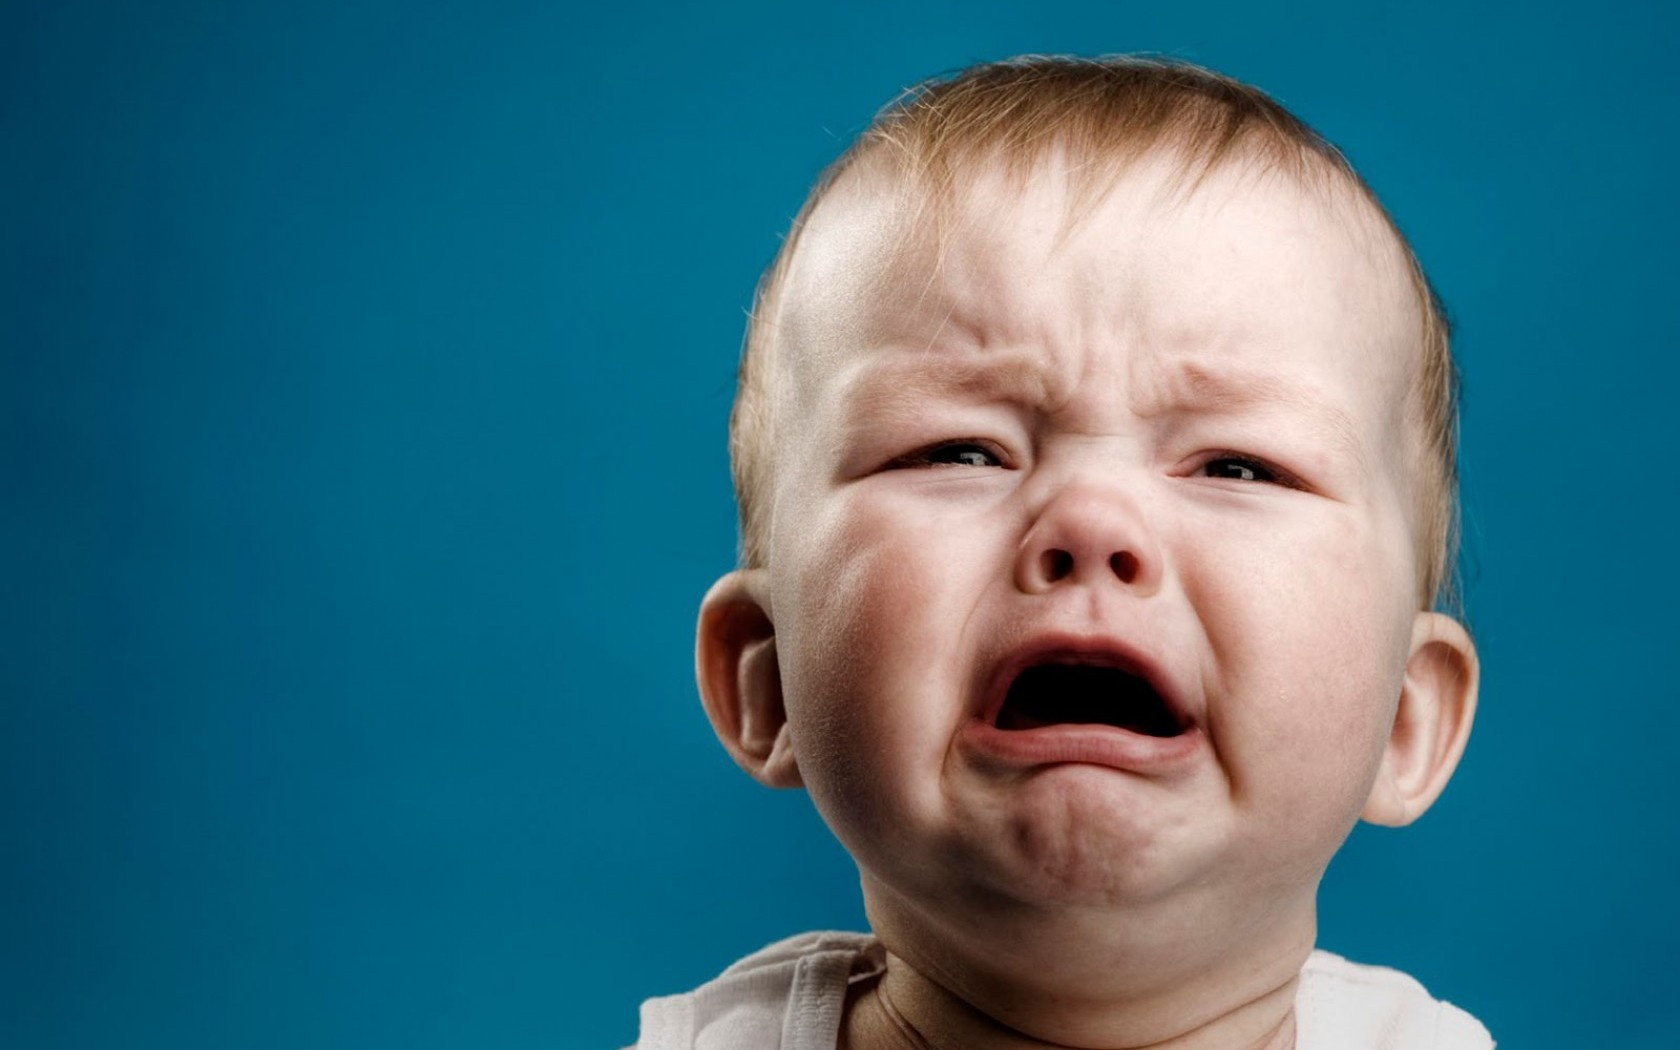 Funny Crying Babies